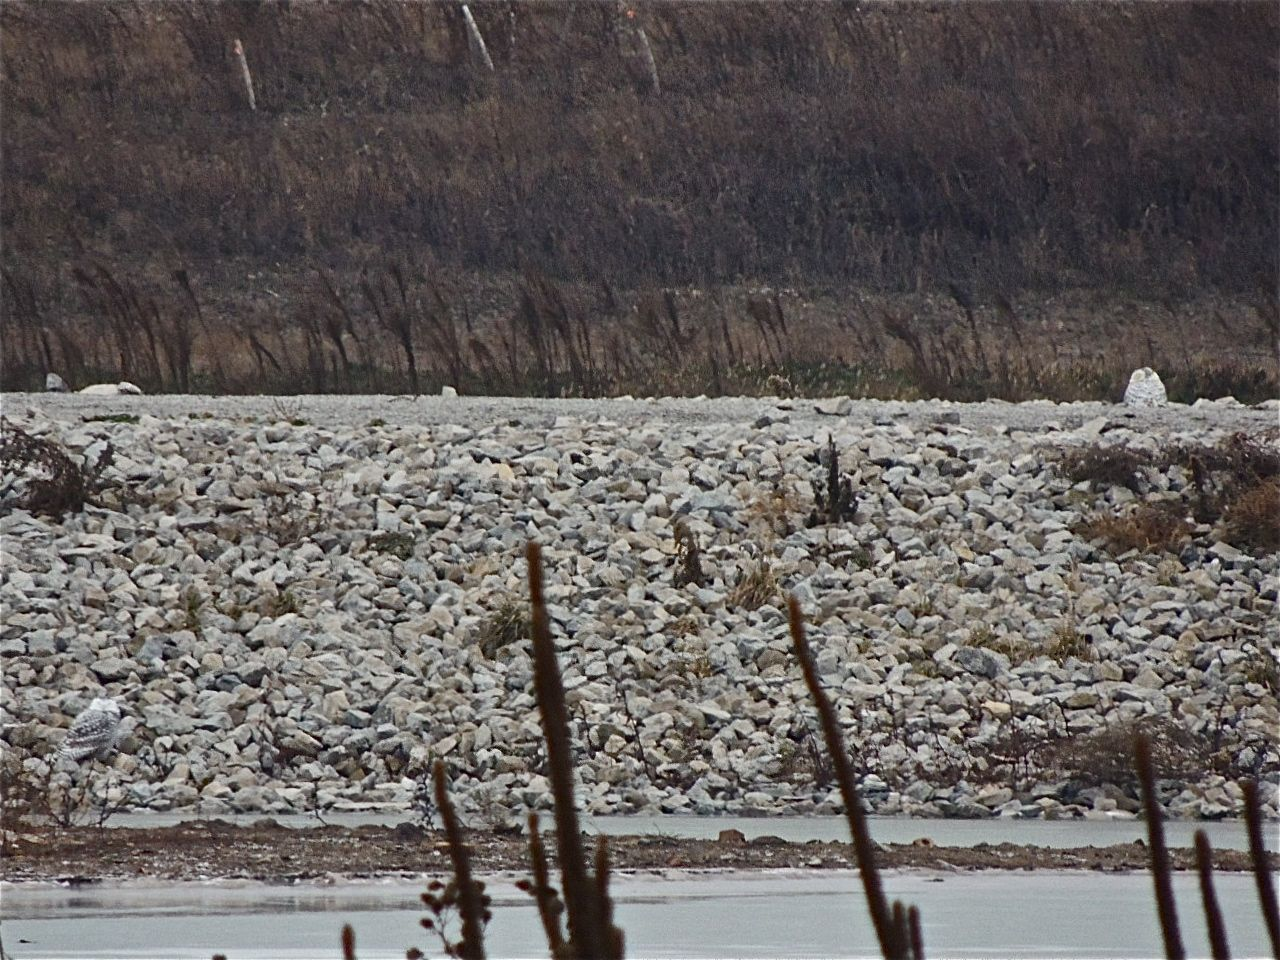 Two Snowy Owls here. One on top of the rocks at left, the other lower left and rather inconspicuously greyish